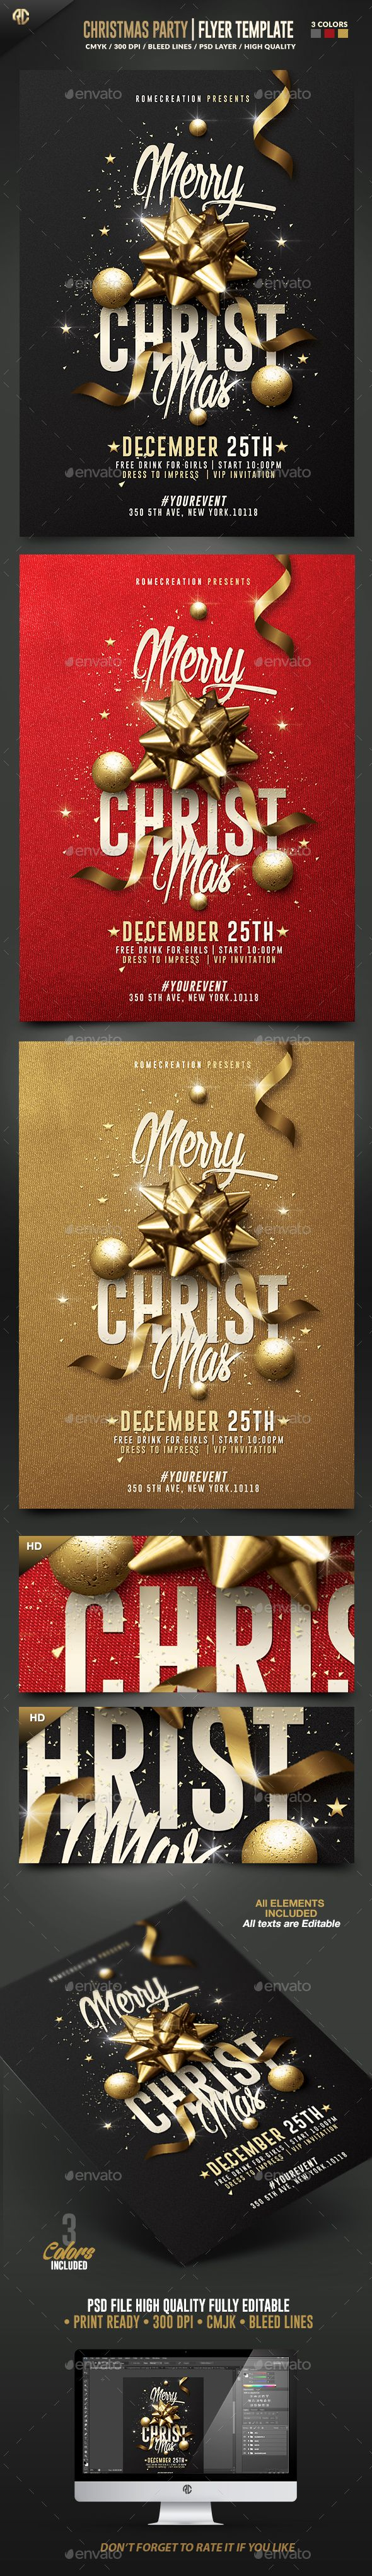 Pin By Best Graphic Design On Christmas Flyer Templates Pinterest